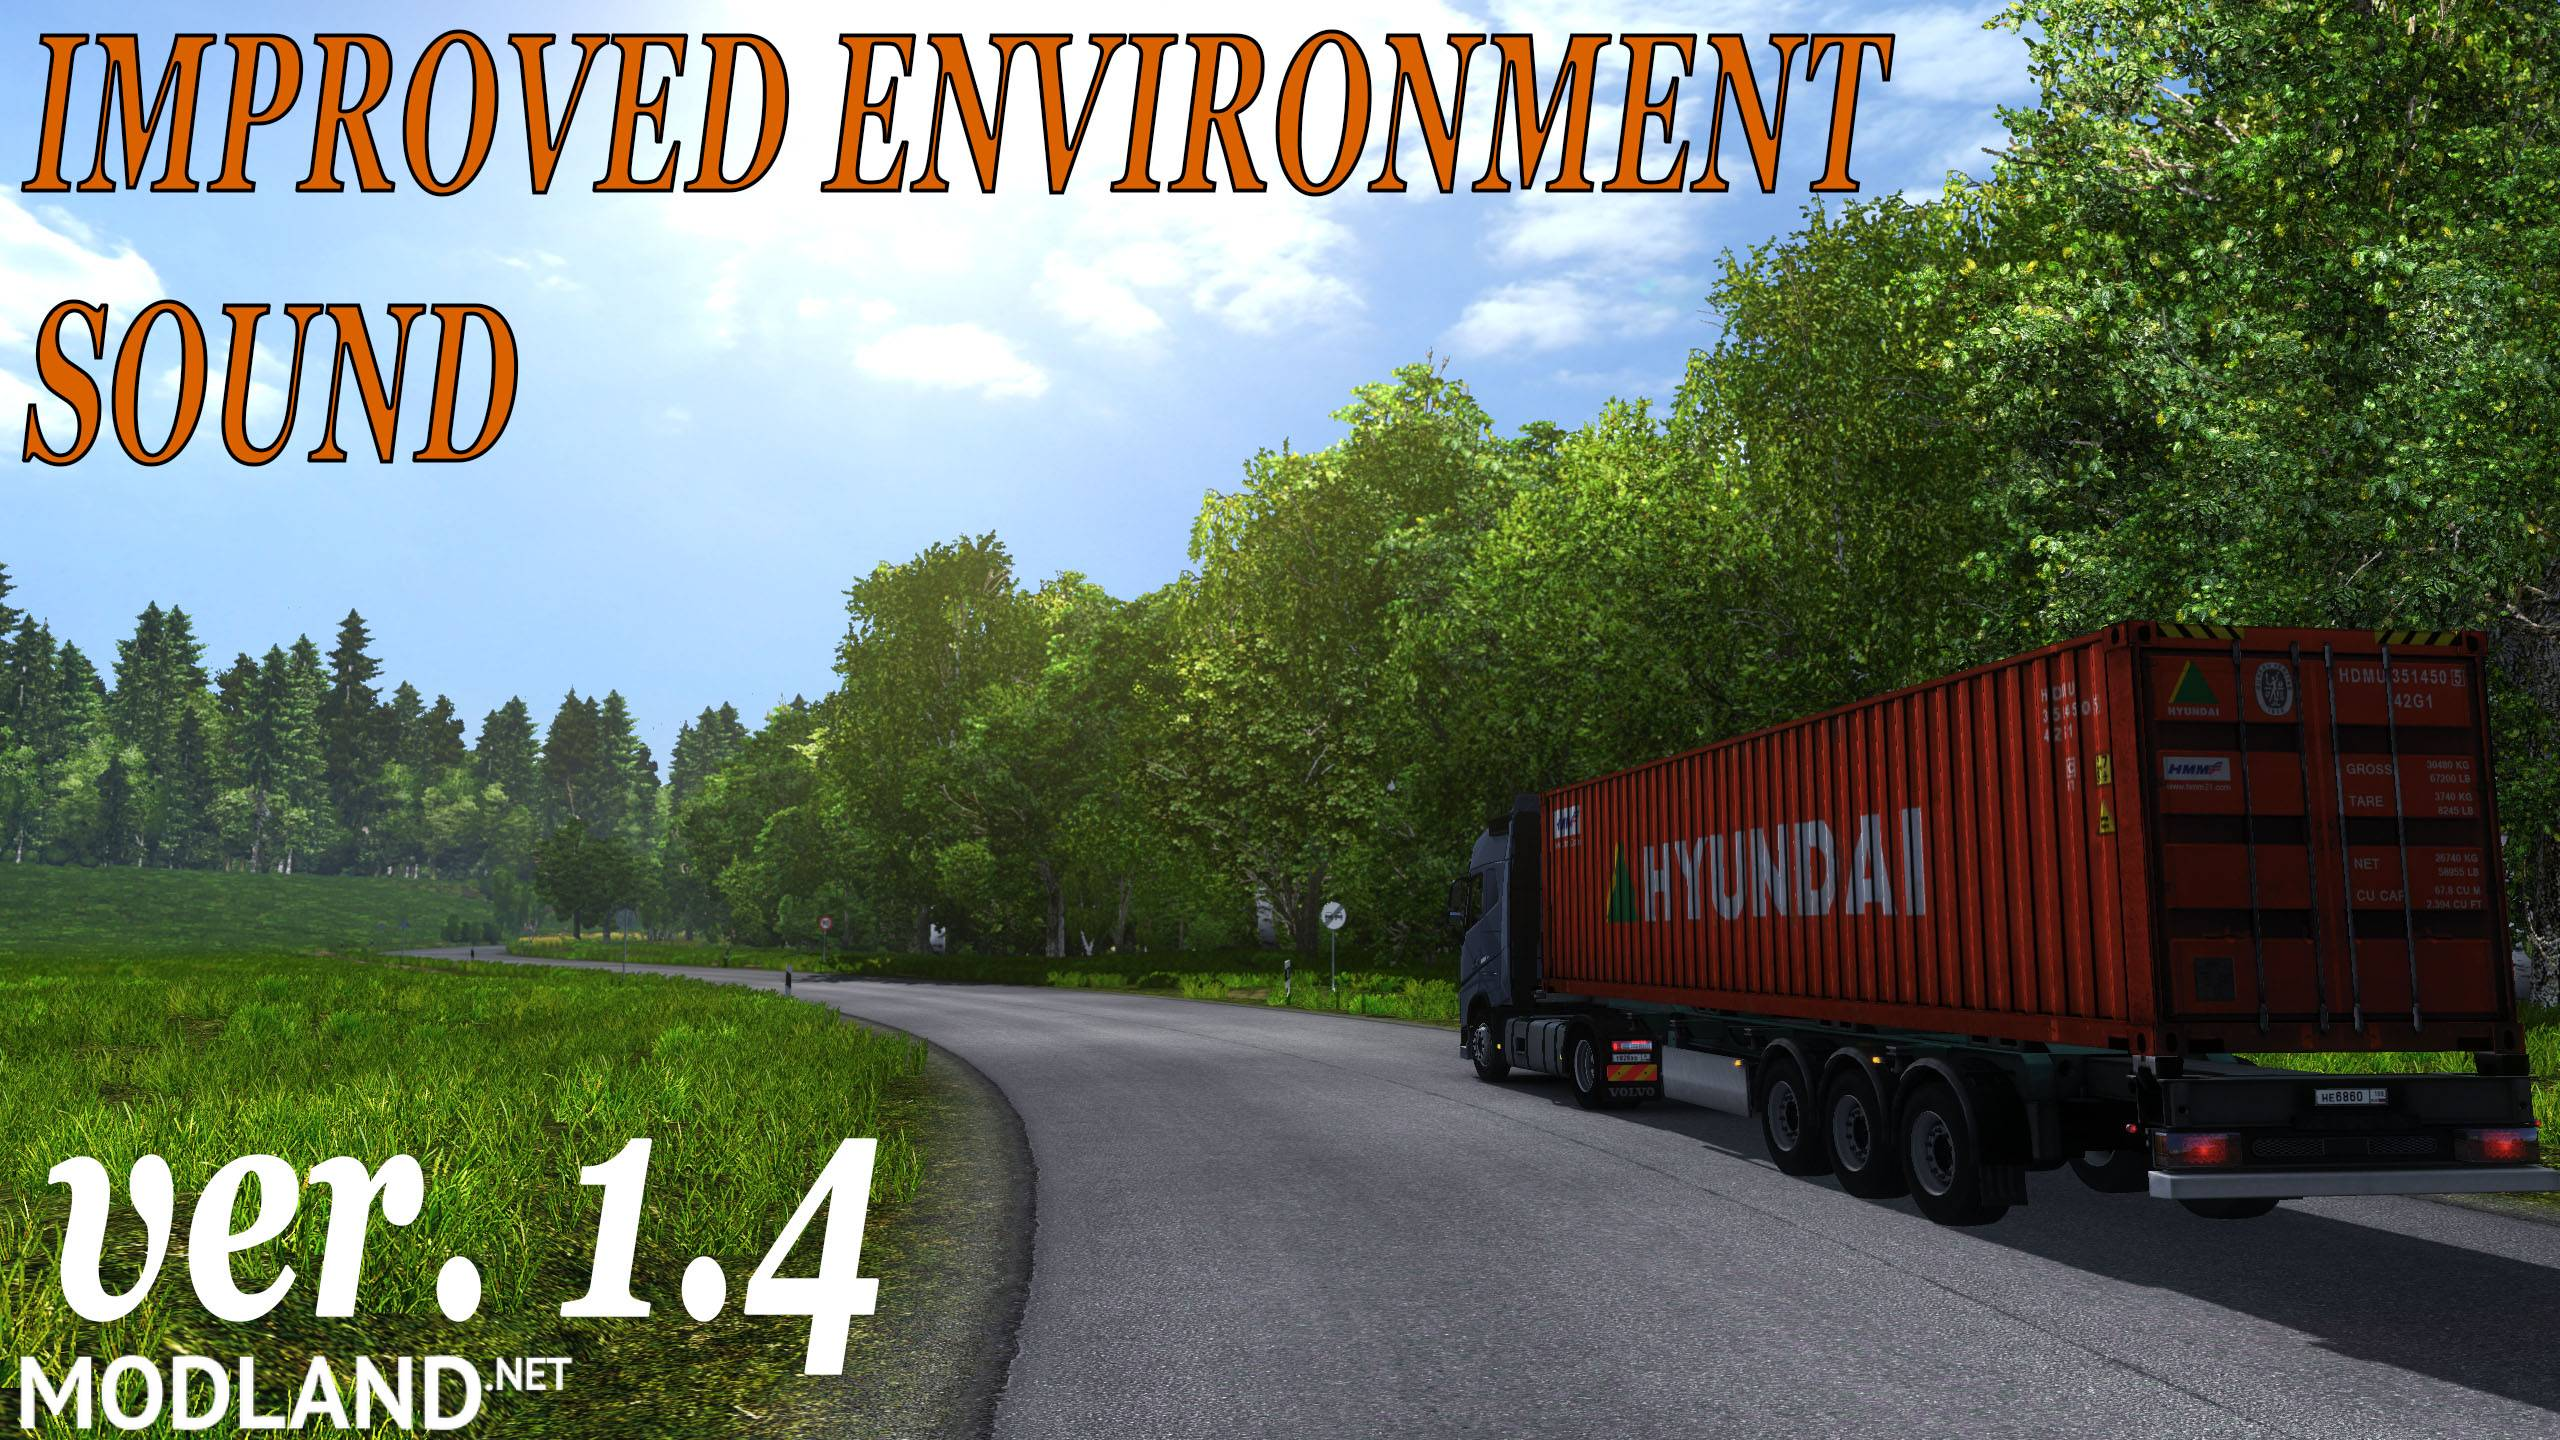 Improved Environment Sound Ver. 1.4 Mod For ETS 2